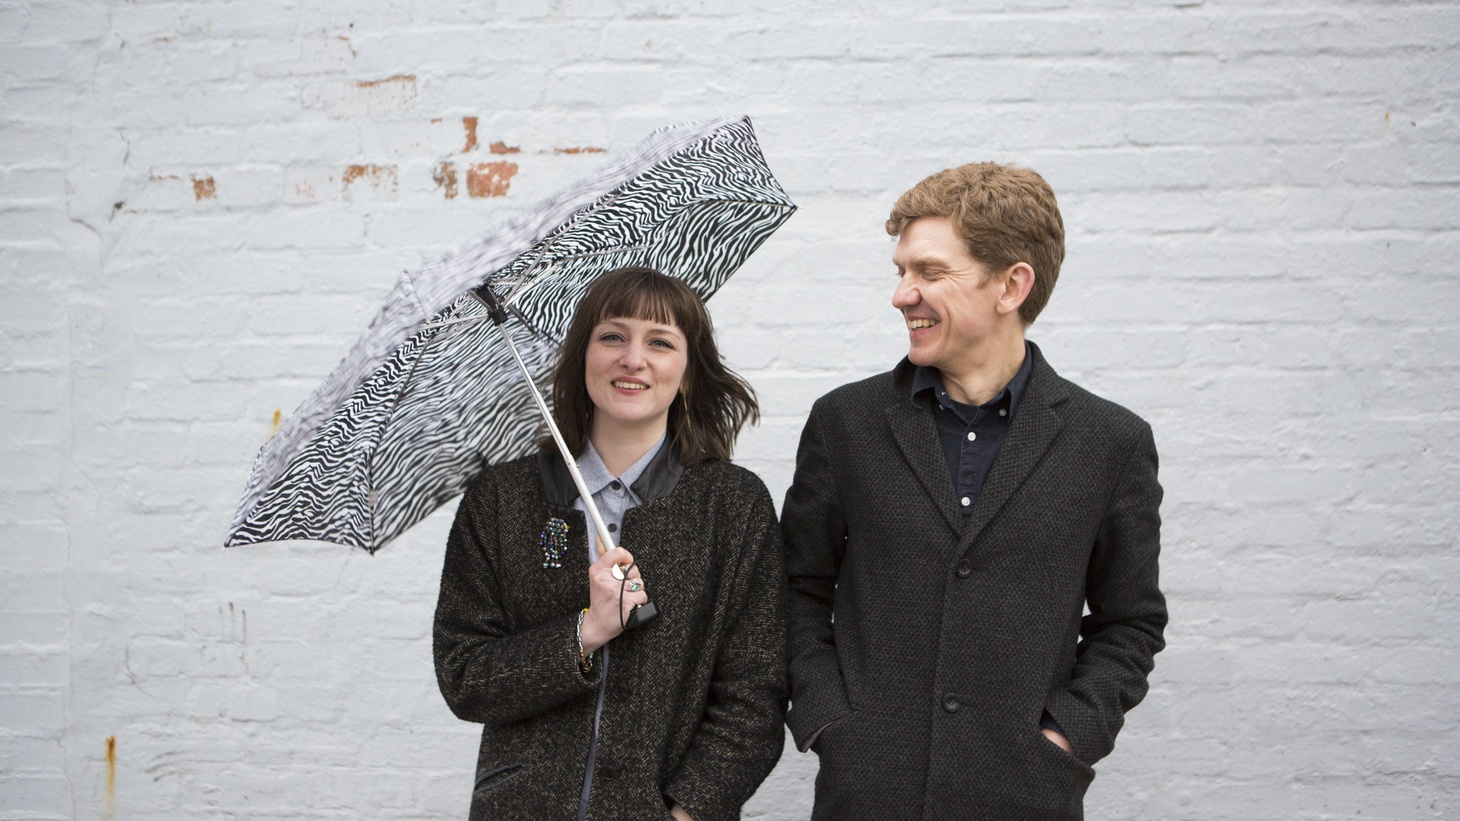 """Peter Brewis of Field Music and Sarah Hayes of Admiral Fallow team up as You Tell Me. Blending their distinct talents, You Tell Me, creates an atmosphere of 80's inspired folk pop on """"Water Cooler."""""""